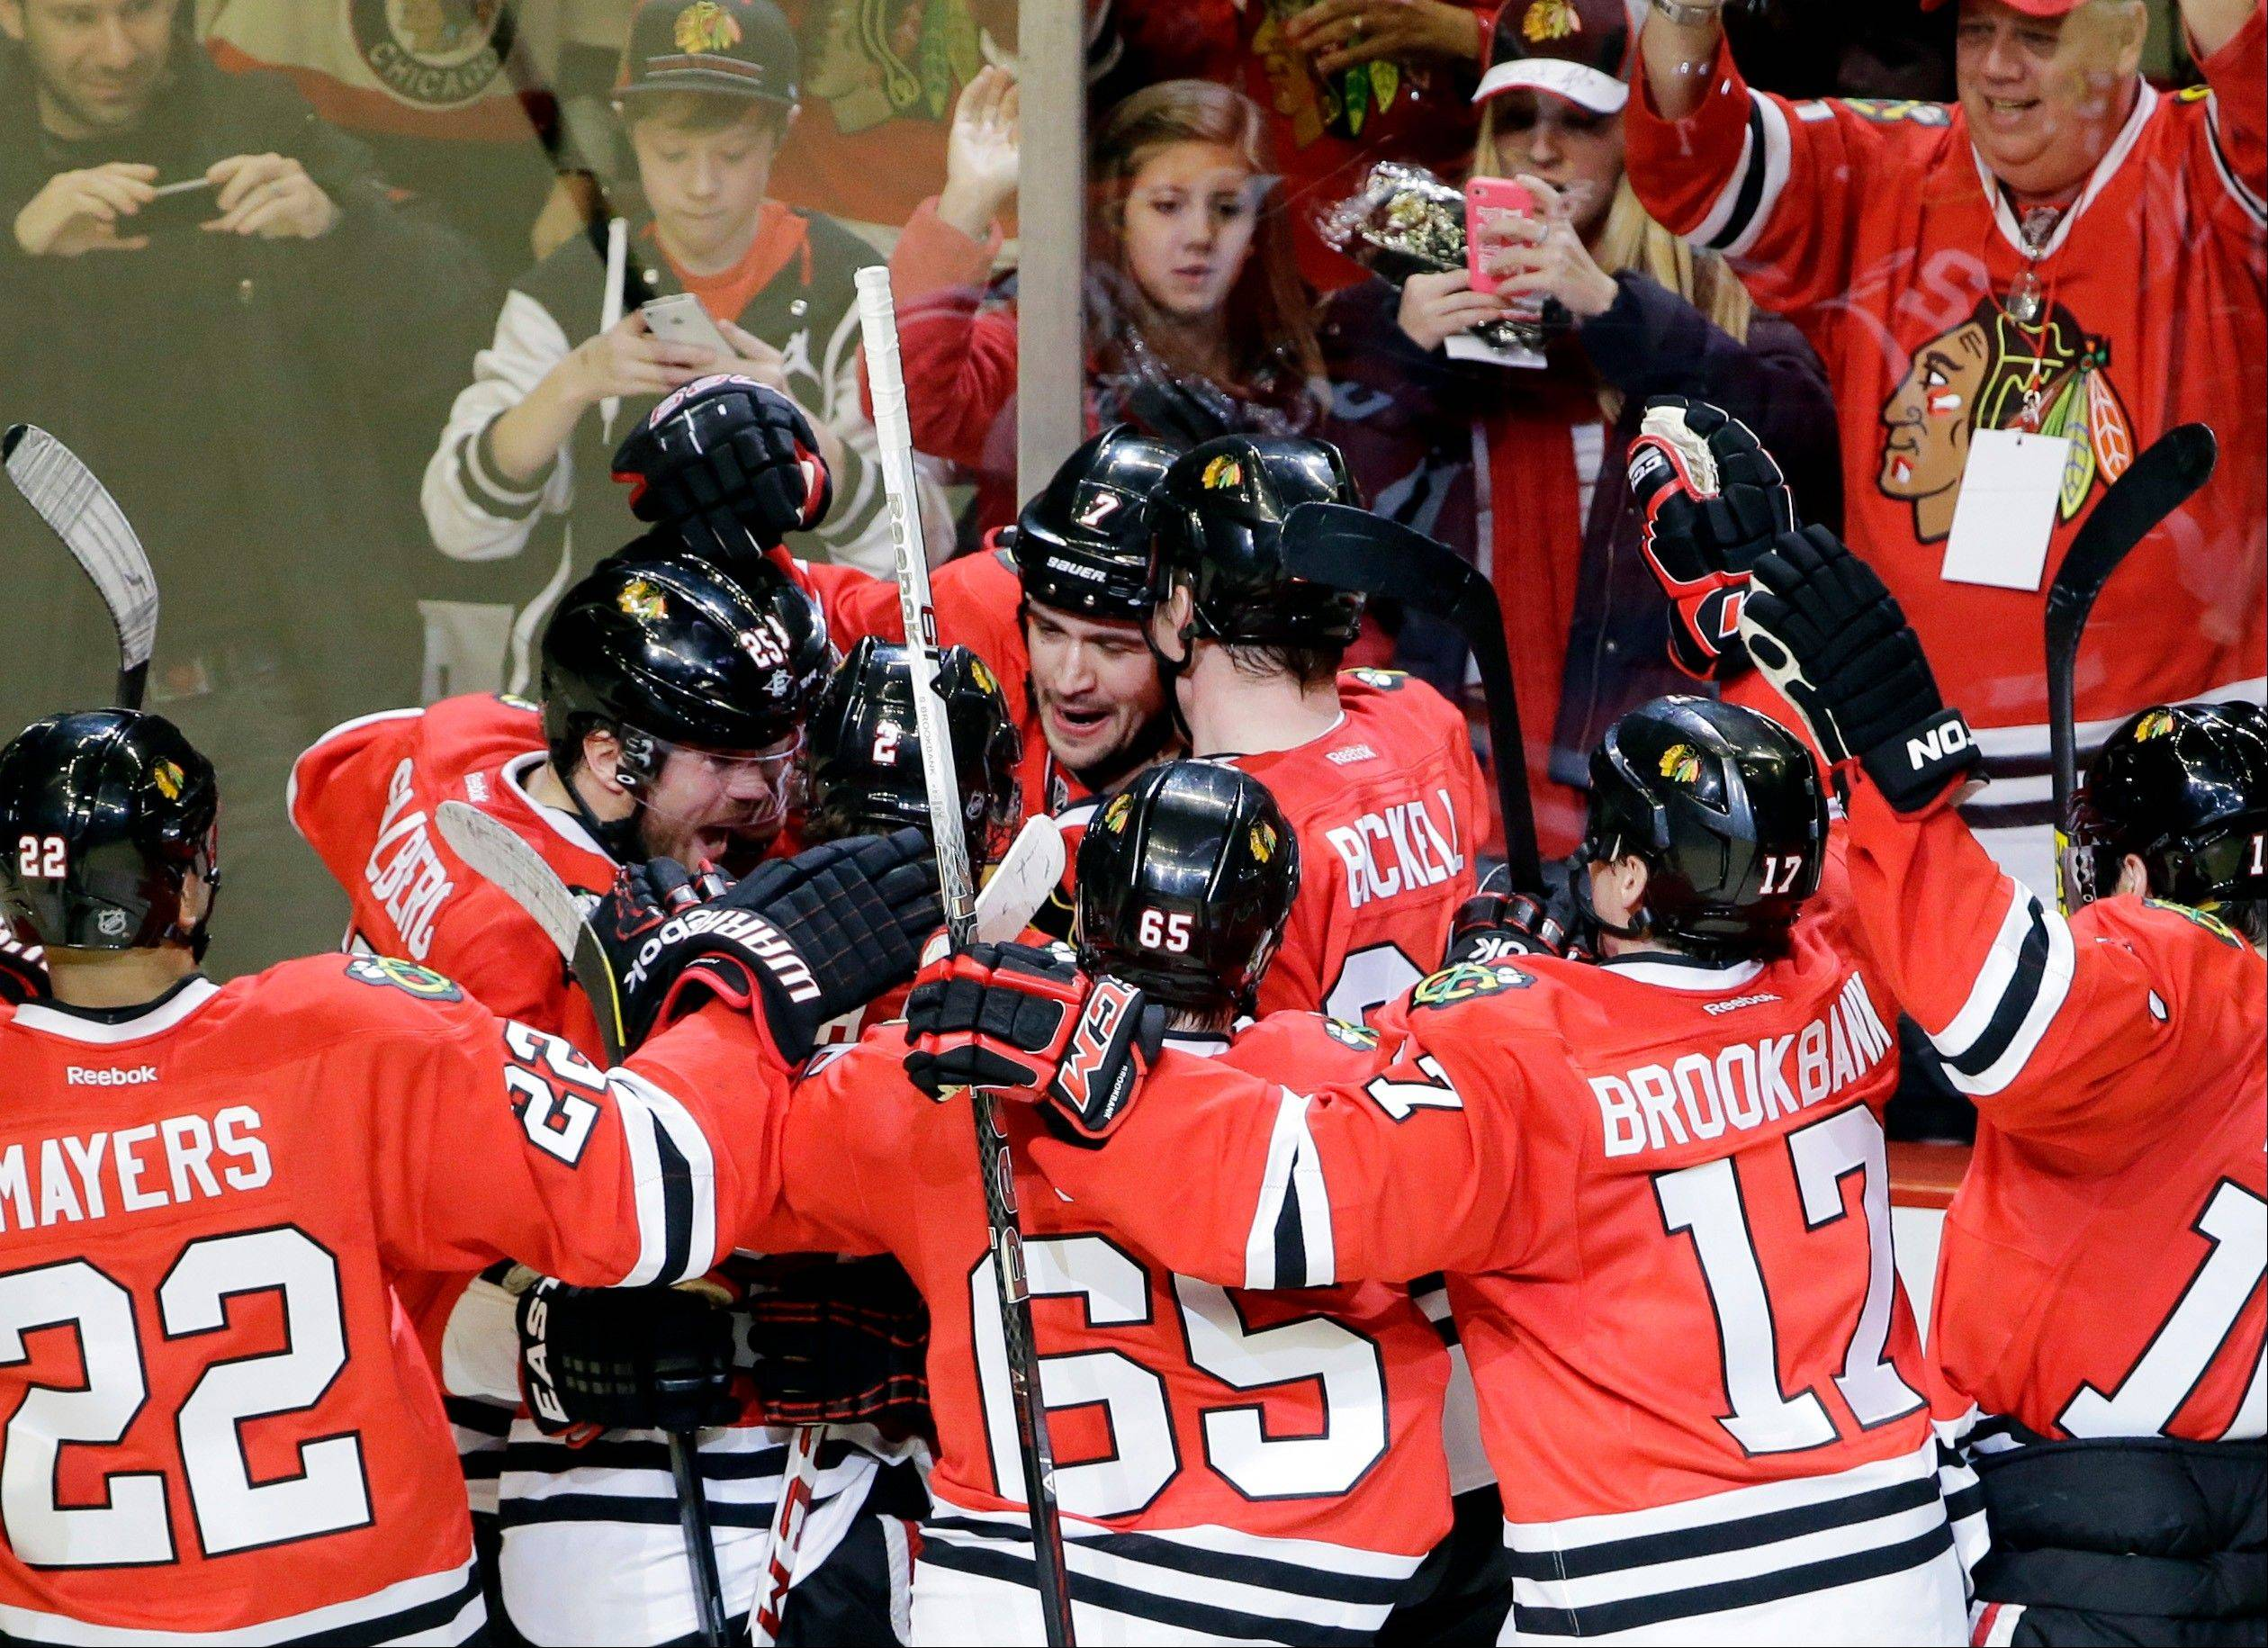 The on-ice success of the Blackhawks that has captured the attention of Chicago fans has now gone national, with Sports Illustrated, ESPN, TSN and The Wall Street Journal sending reporters to follow the team.